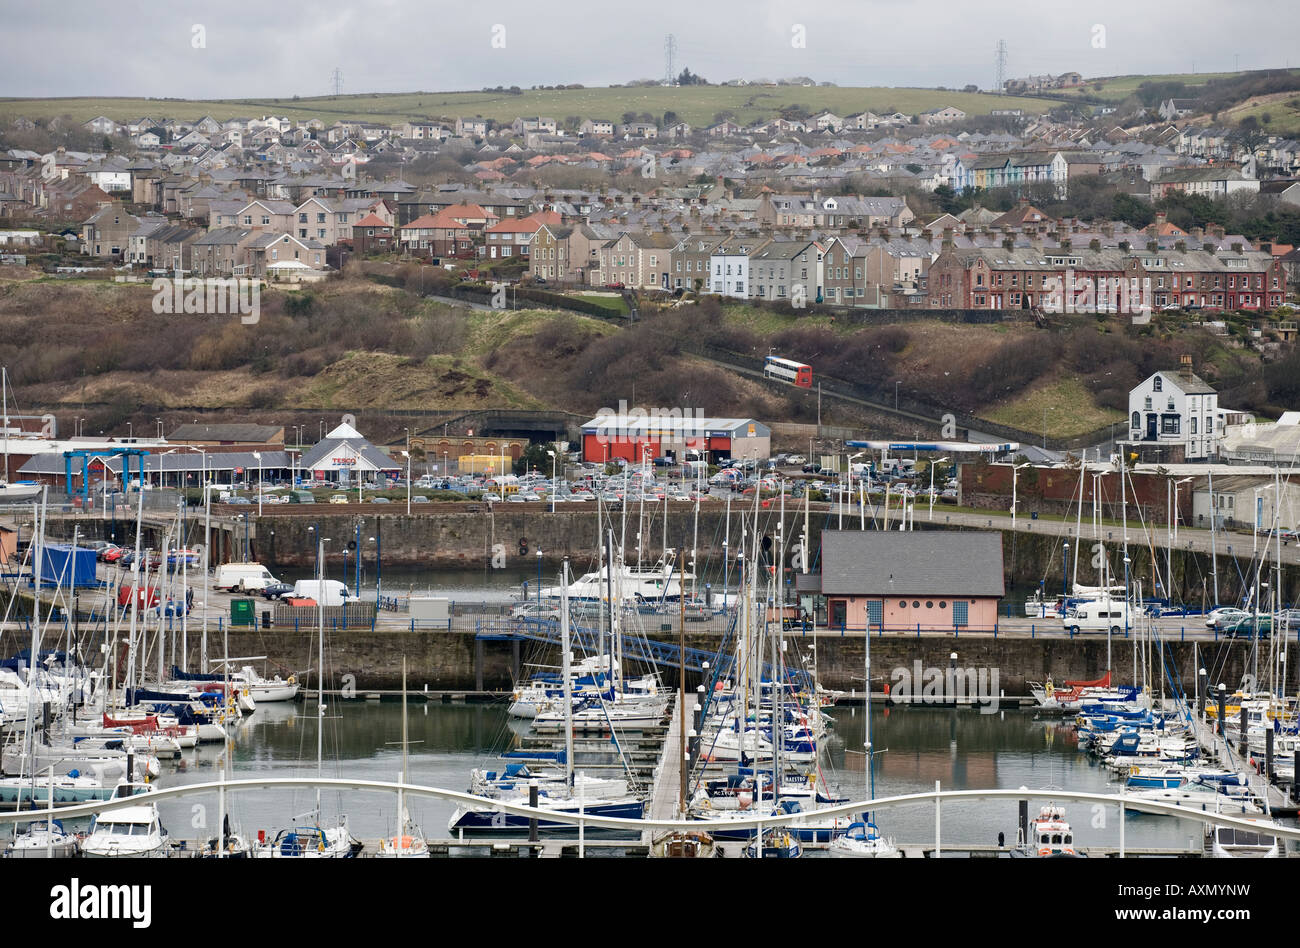 A view of the coastal town of Whitehaven Cumbria England UK - Stock Image